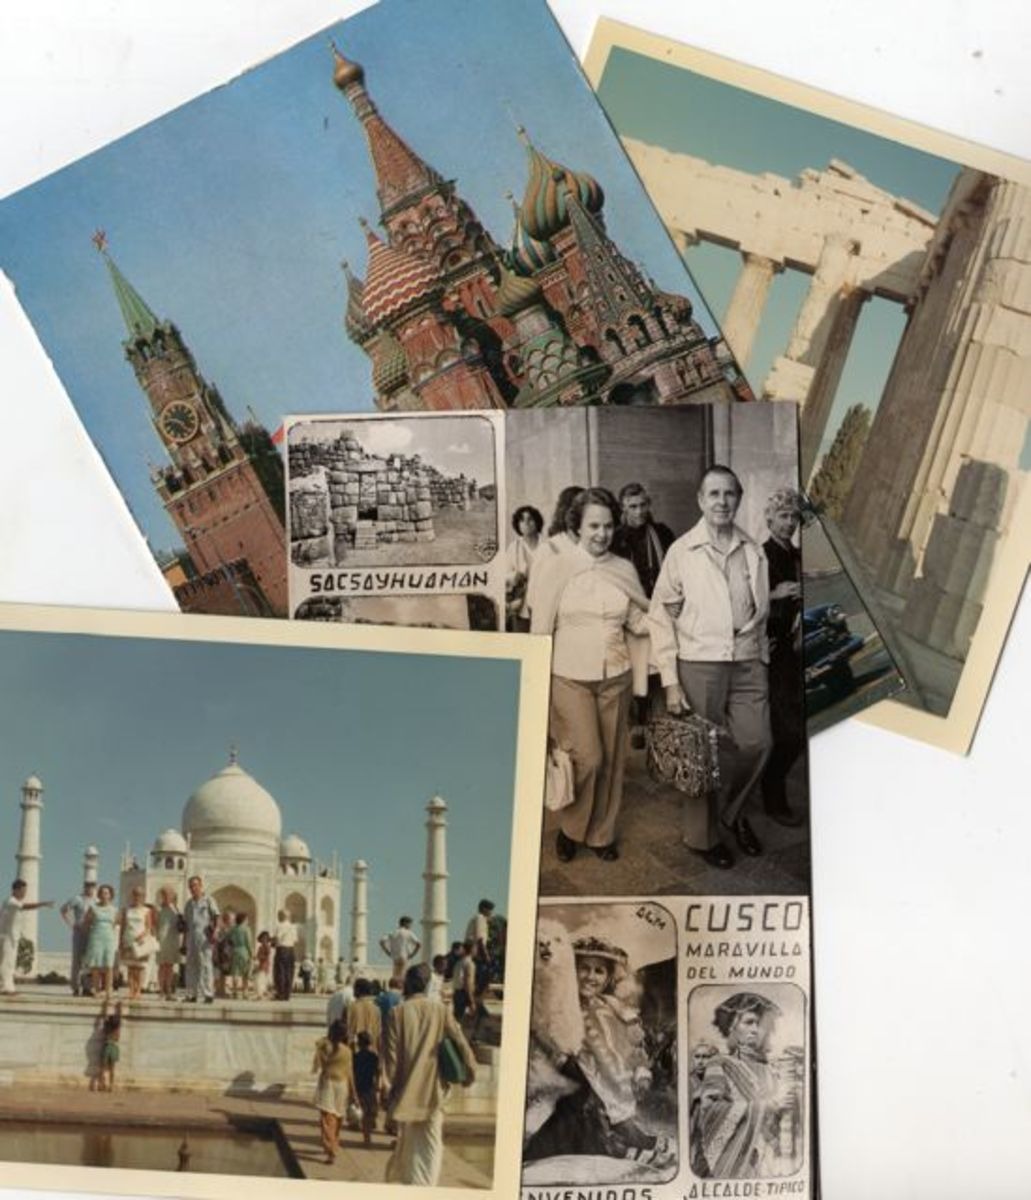 Post cards from around the world--  Moscow, Athens, Agra, and Cusco.